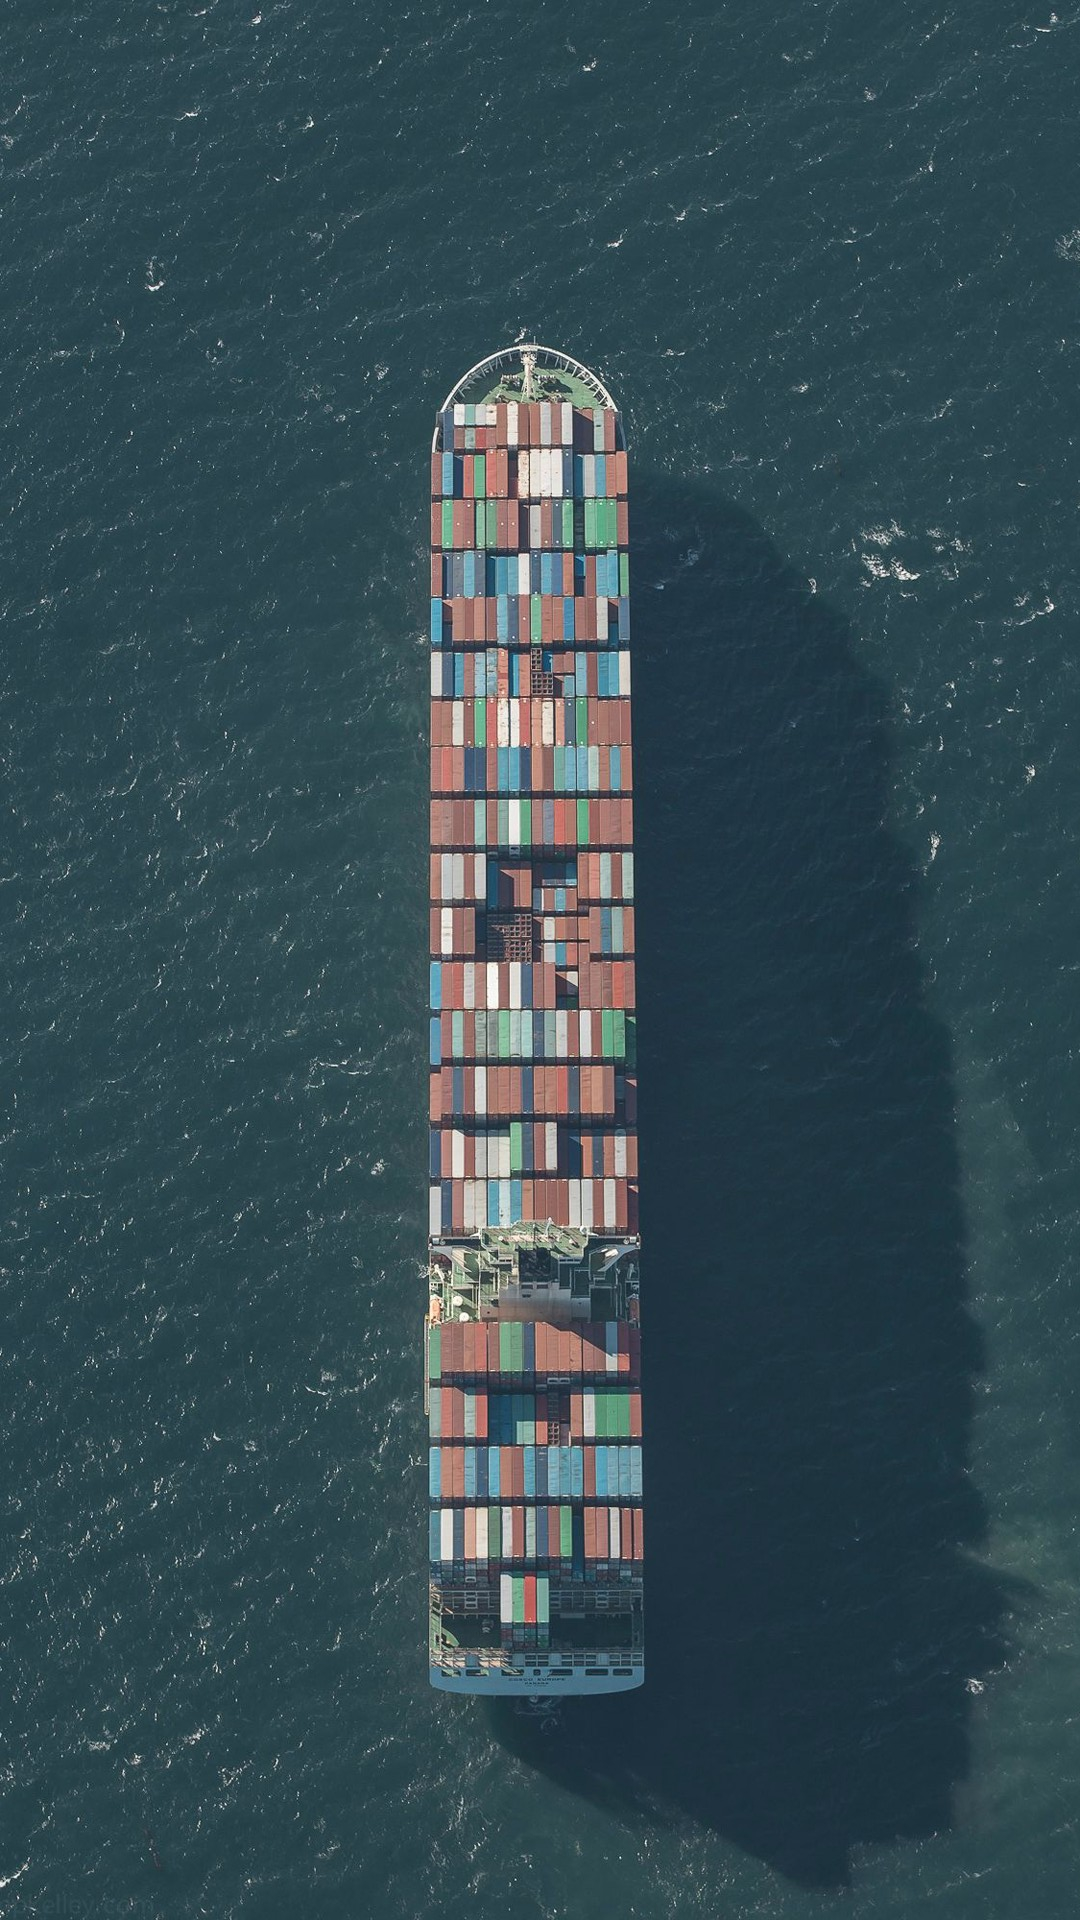 Ios 11 Hd Wallpaper Large Container Ship Minimal Iphone Wallpaper Iphone